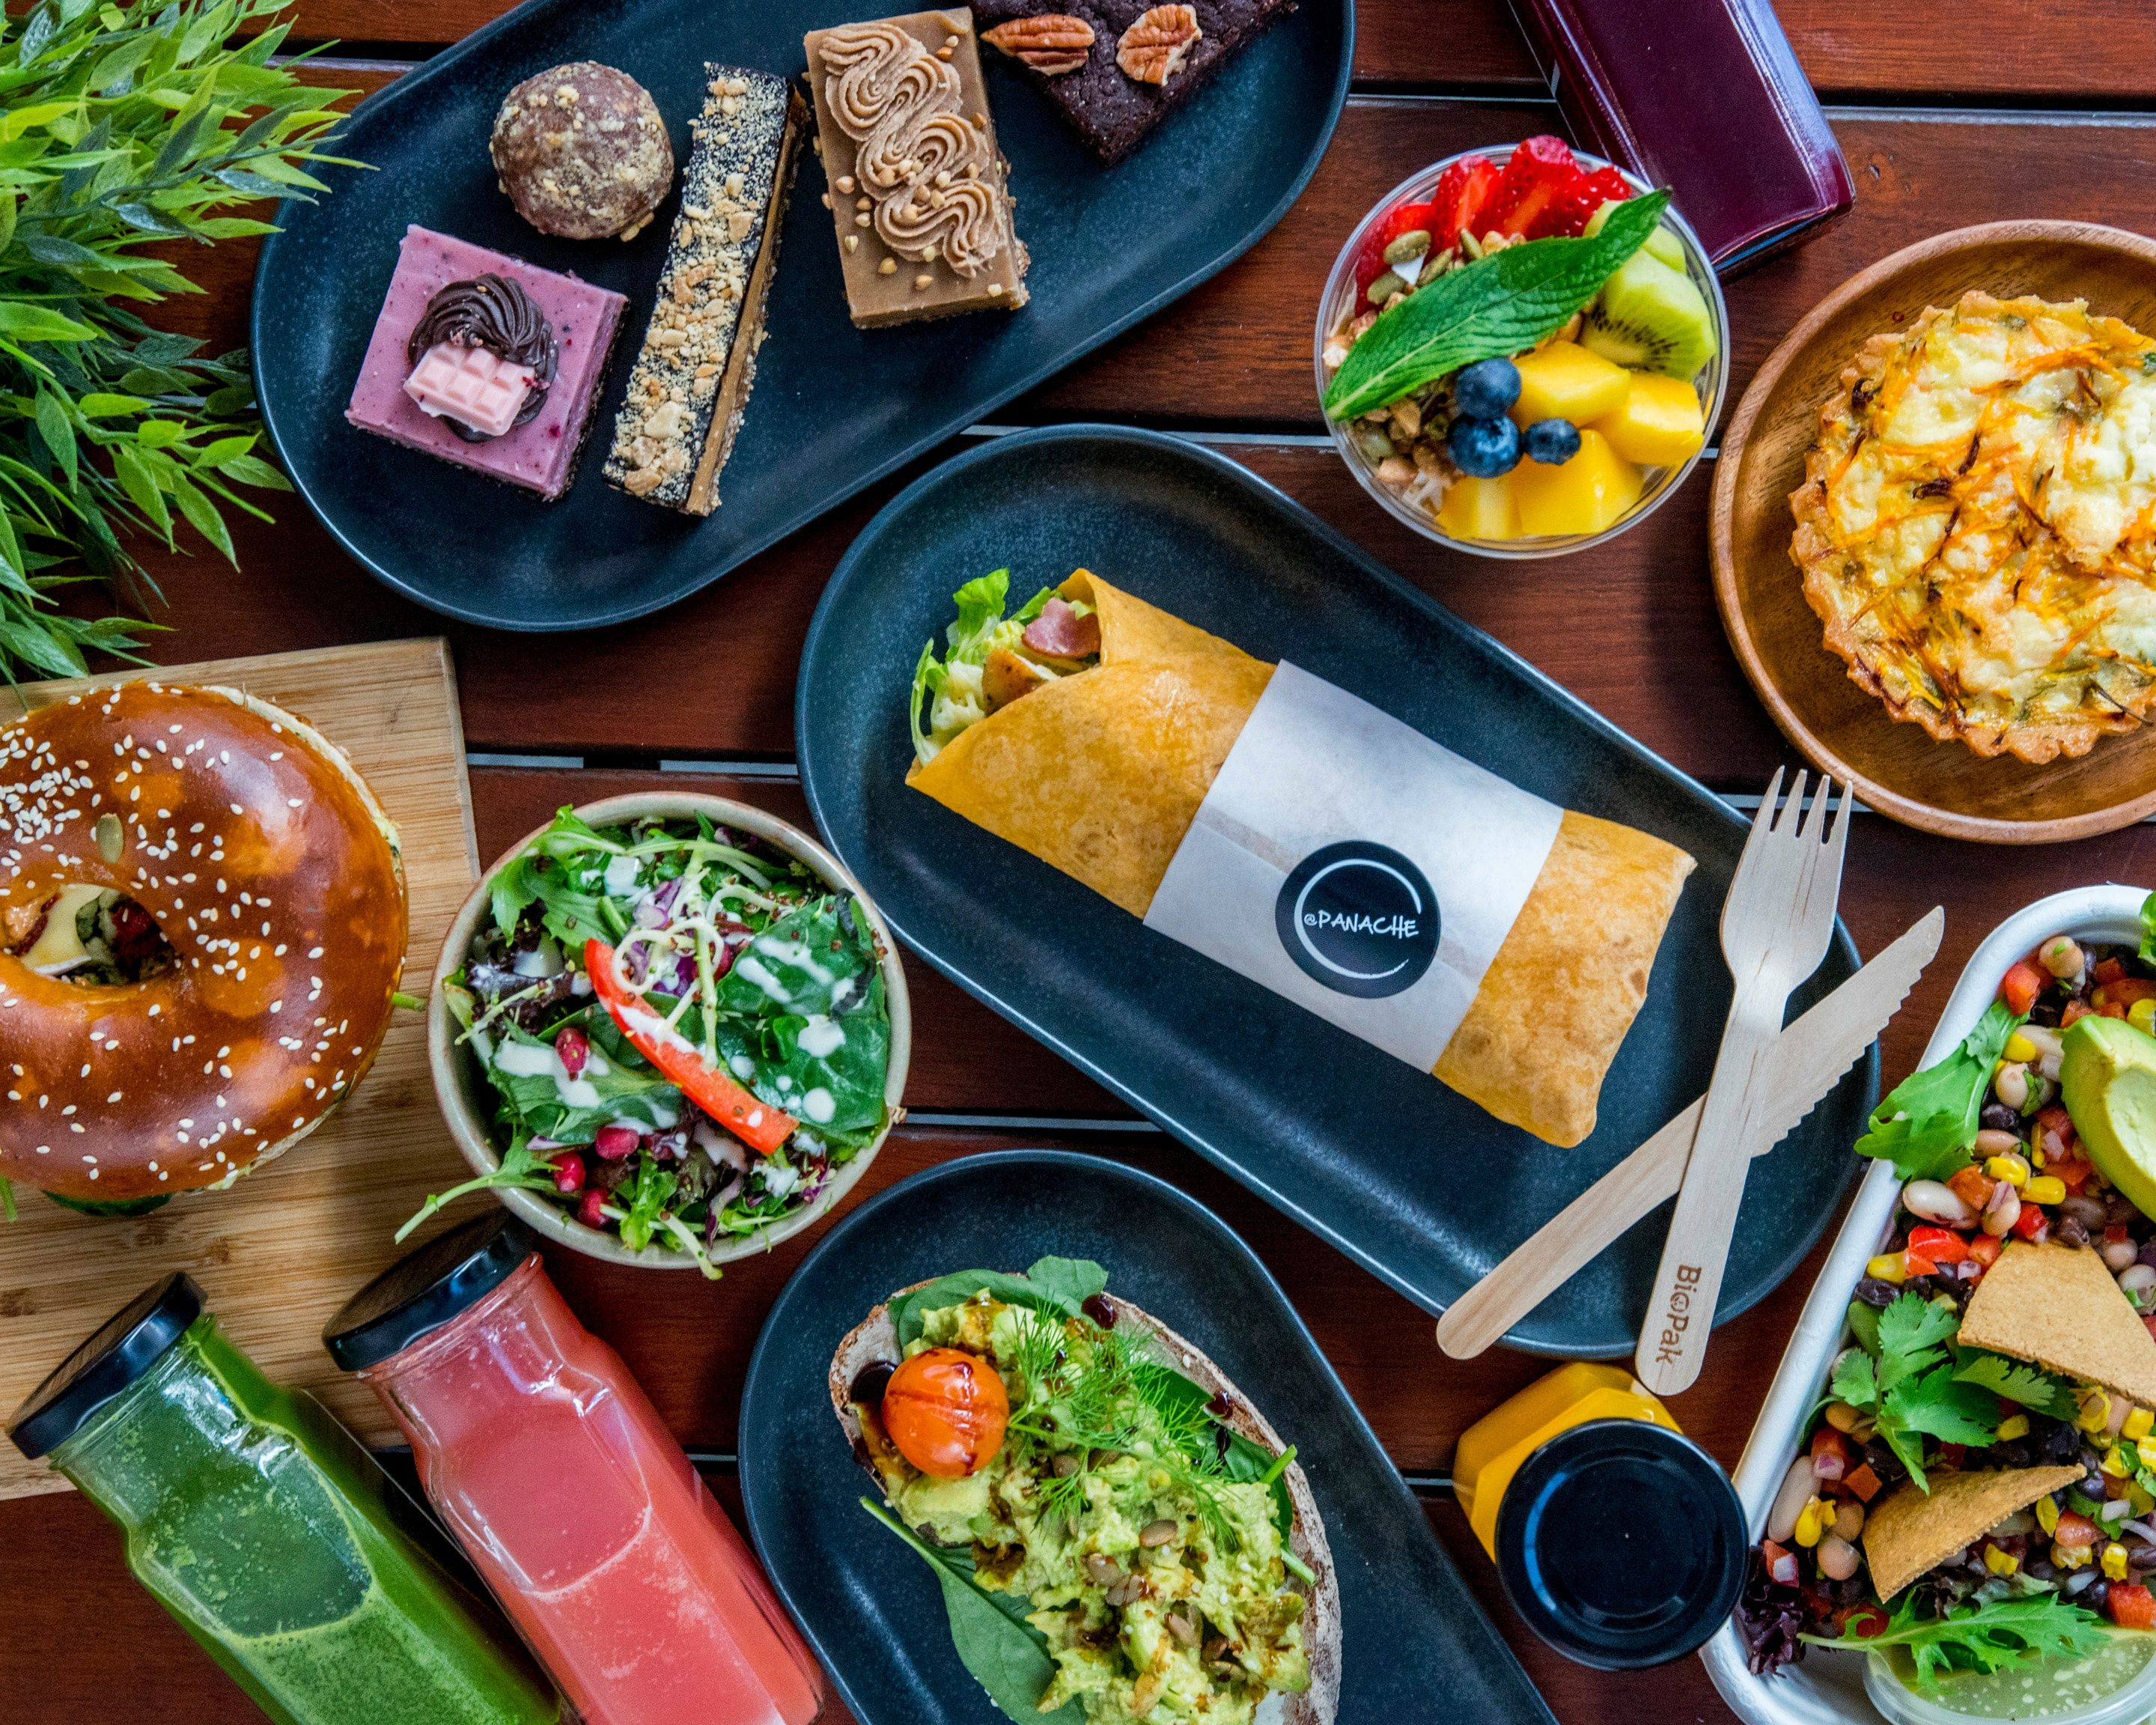 Panche Per Fast Food.Panache Delivery Perth Uber Eats